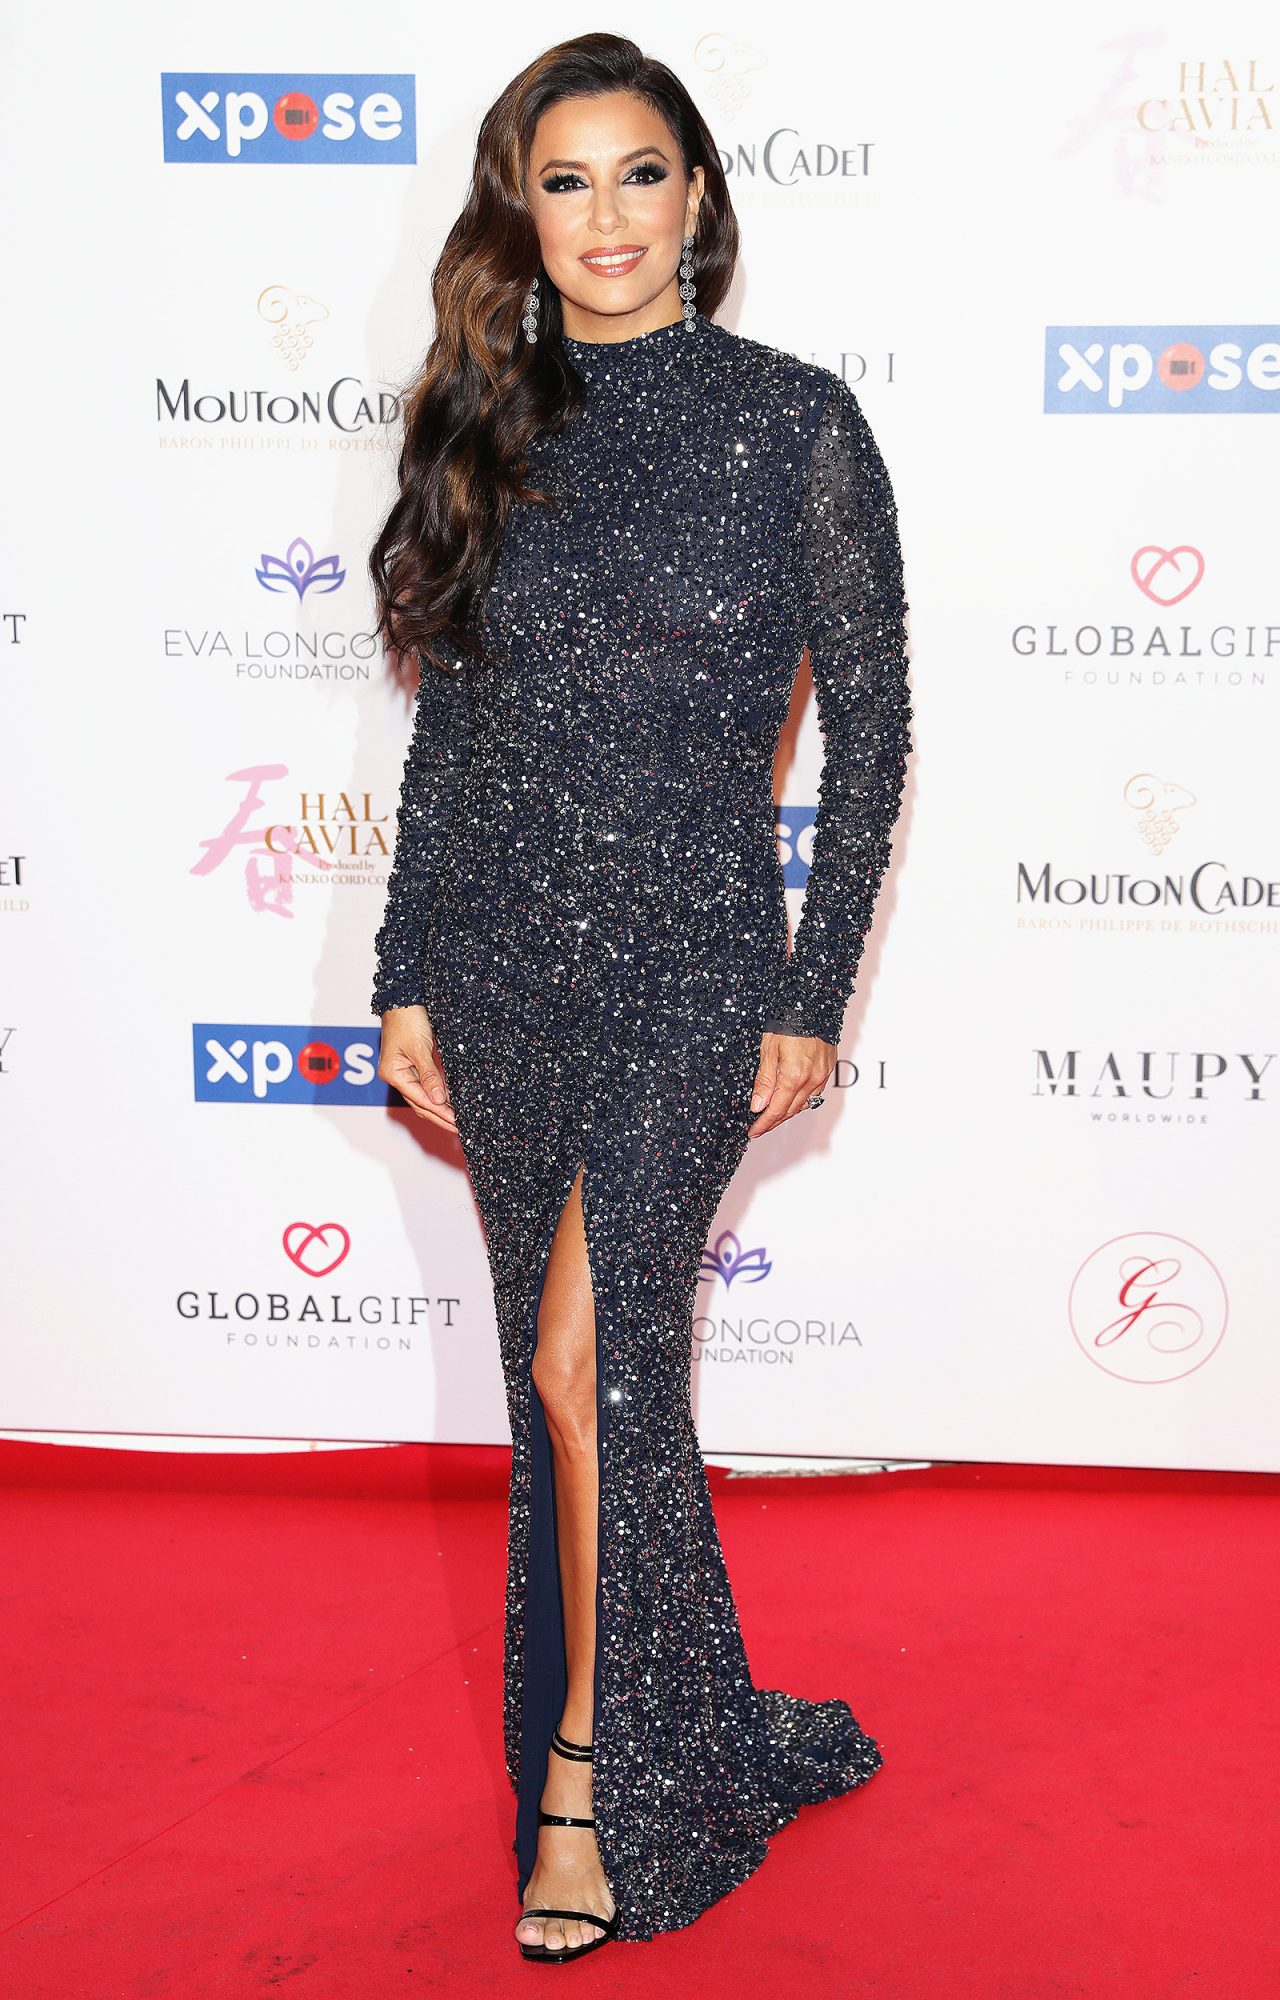 The Global Gift Initiative Arrivals -  The 72nd Annual Cannes Film Festival